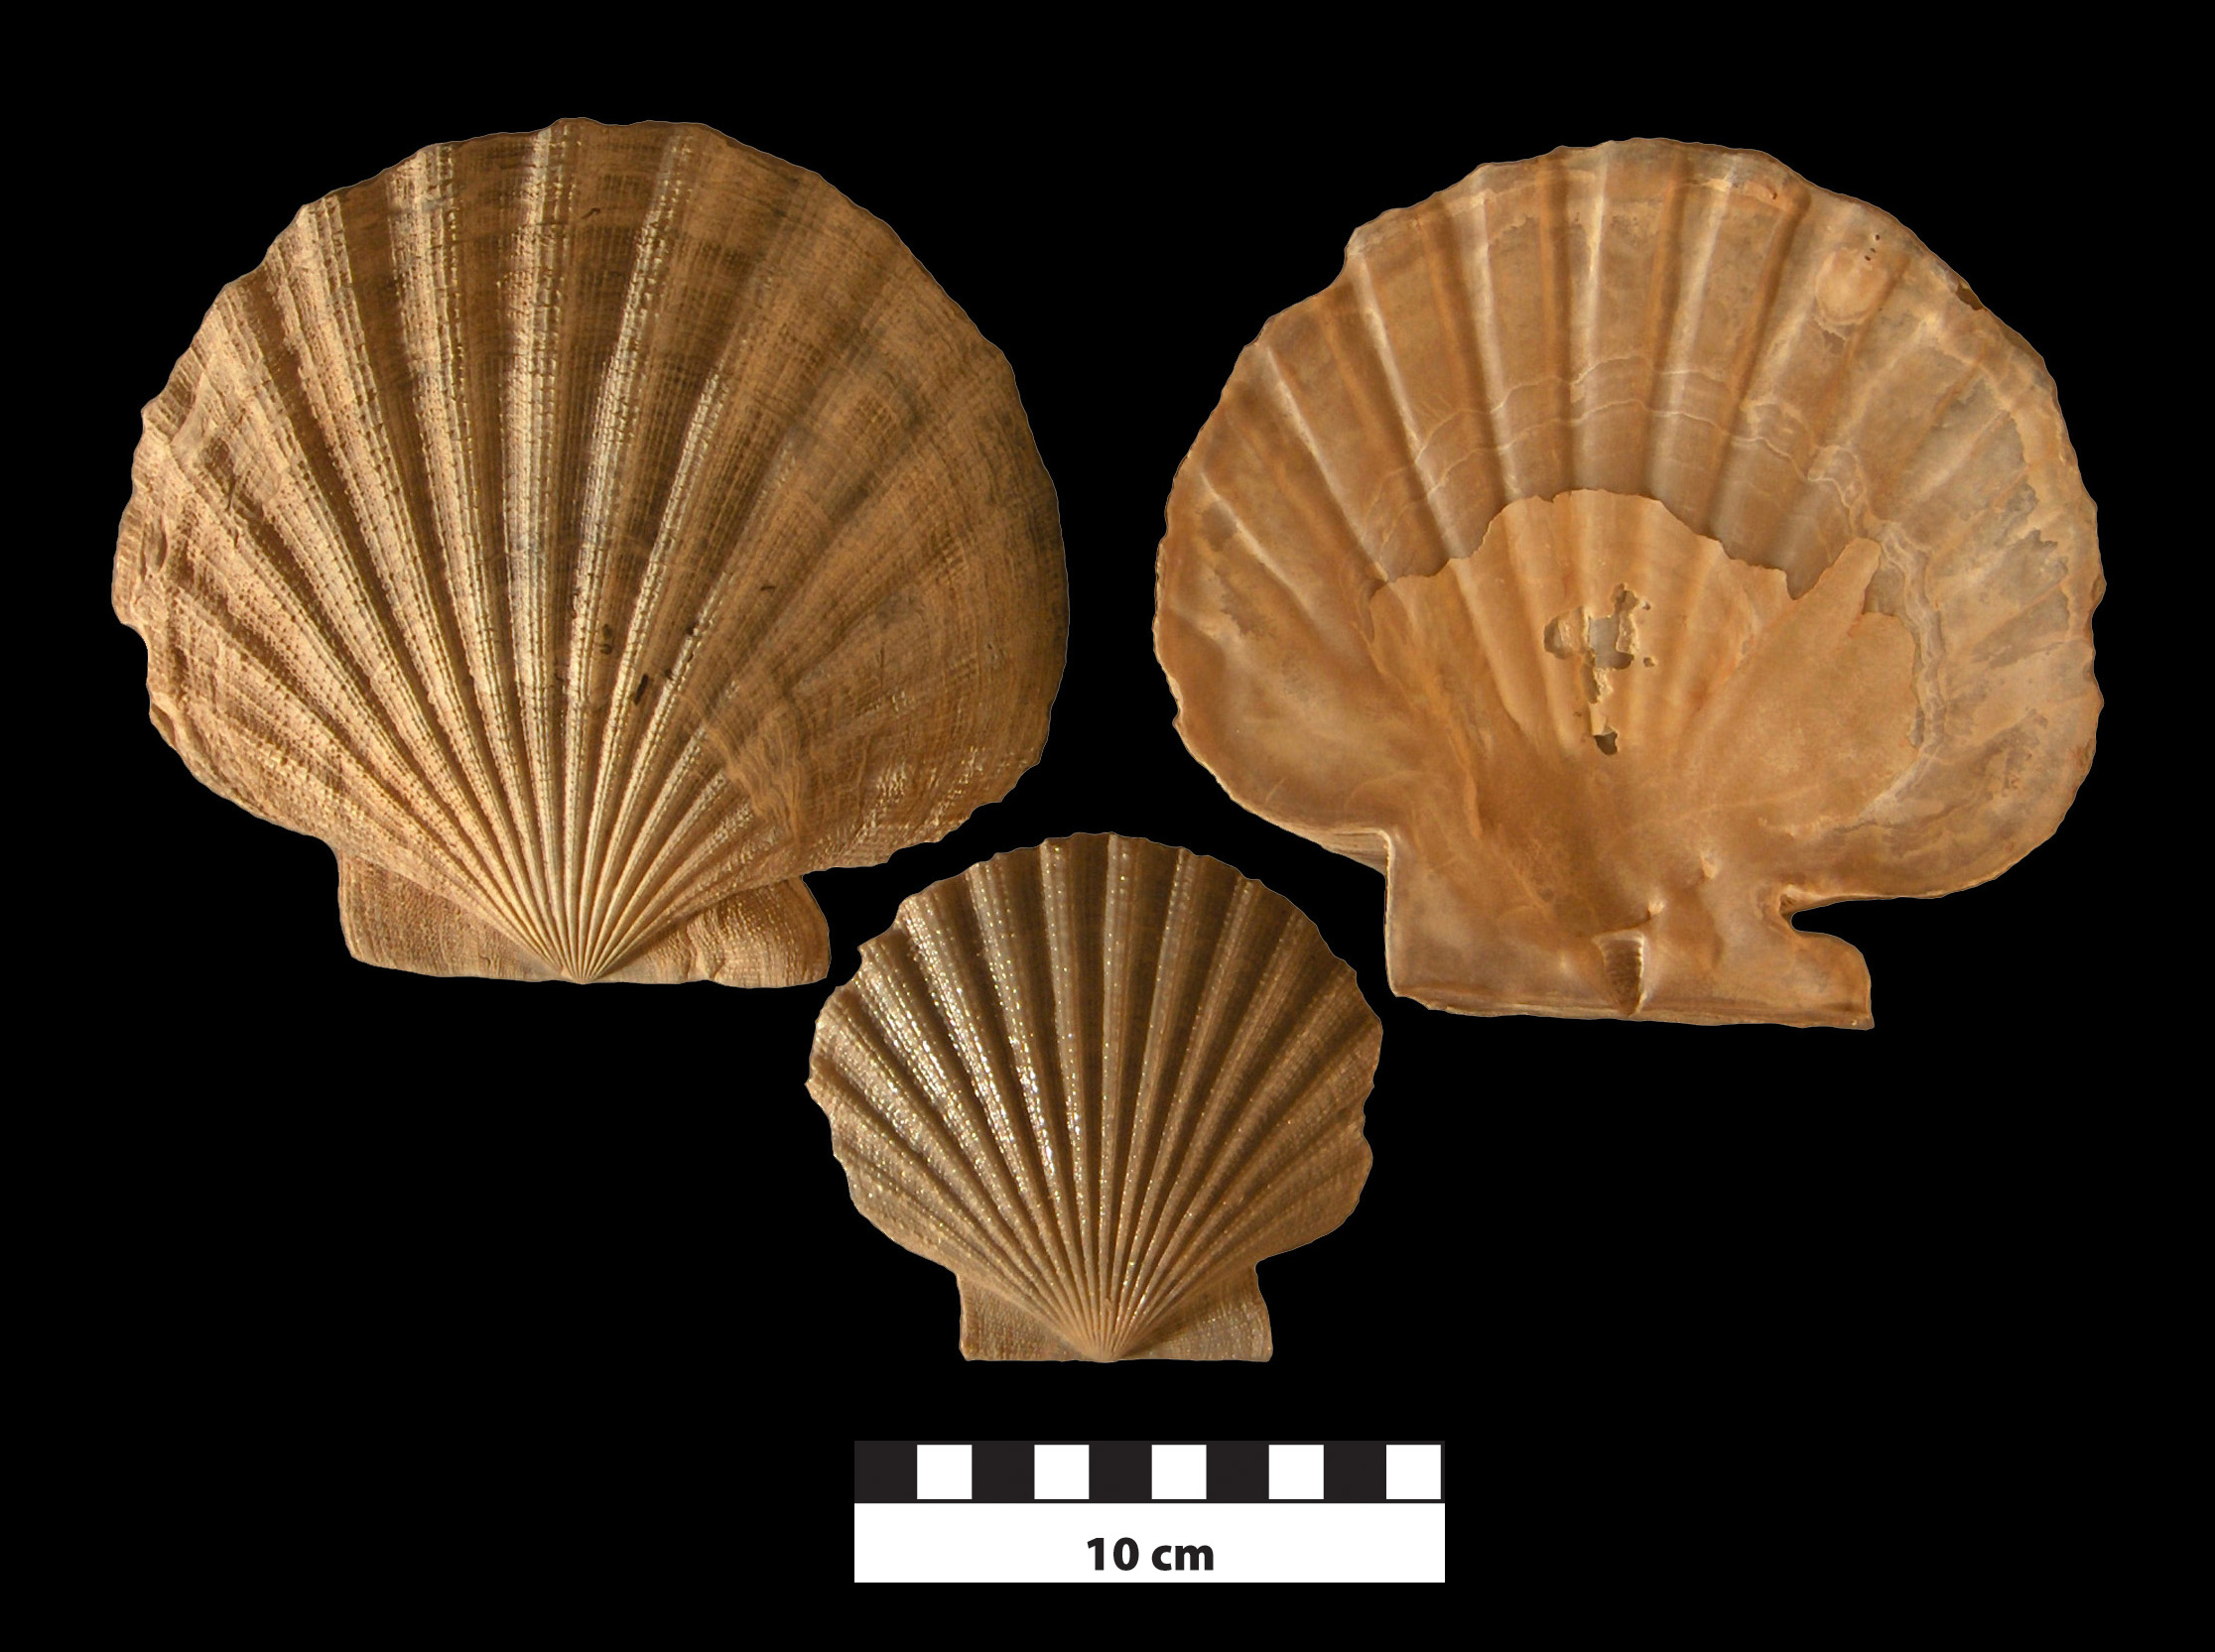 Chesapecten nefrens